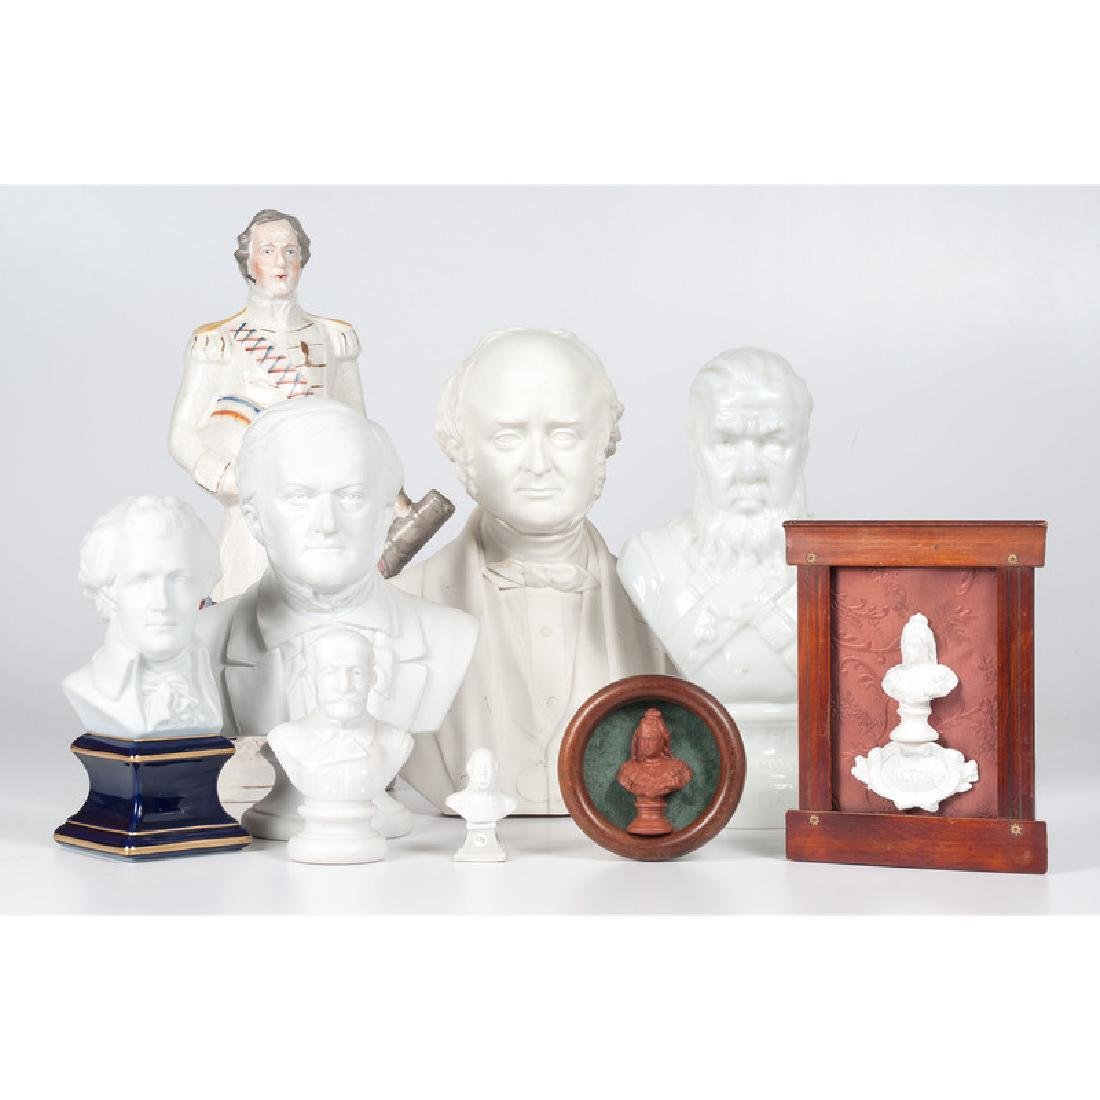 Parian Busts of Mozart and Other Continental Figures,